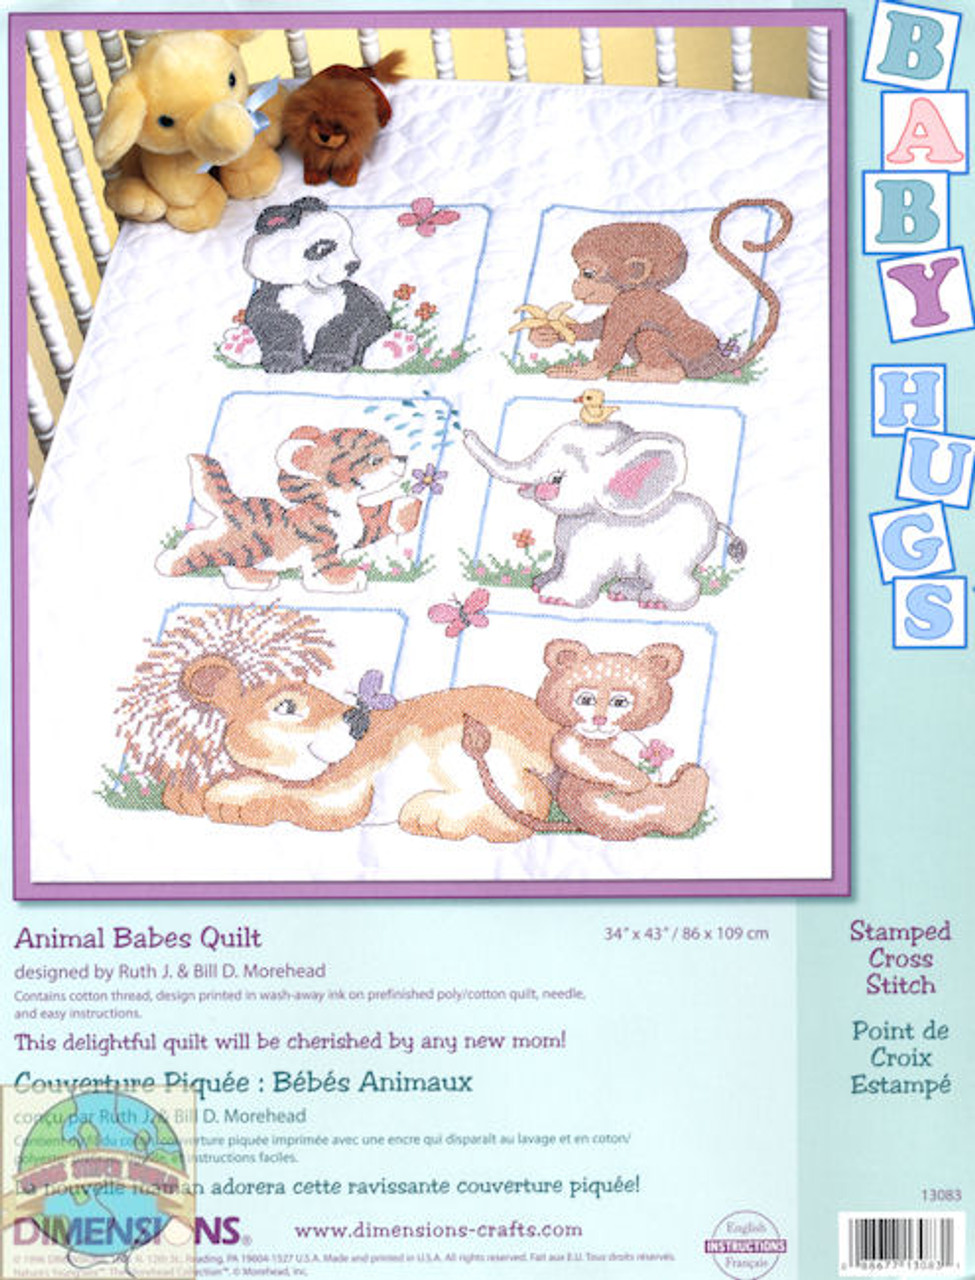 Dimensions Baby Hugs - Animal Babes Quilt